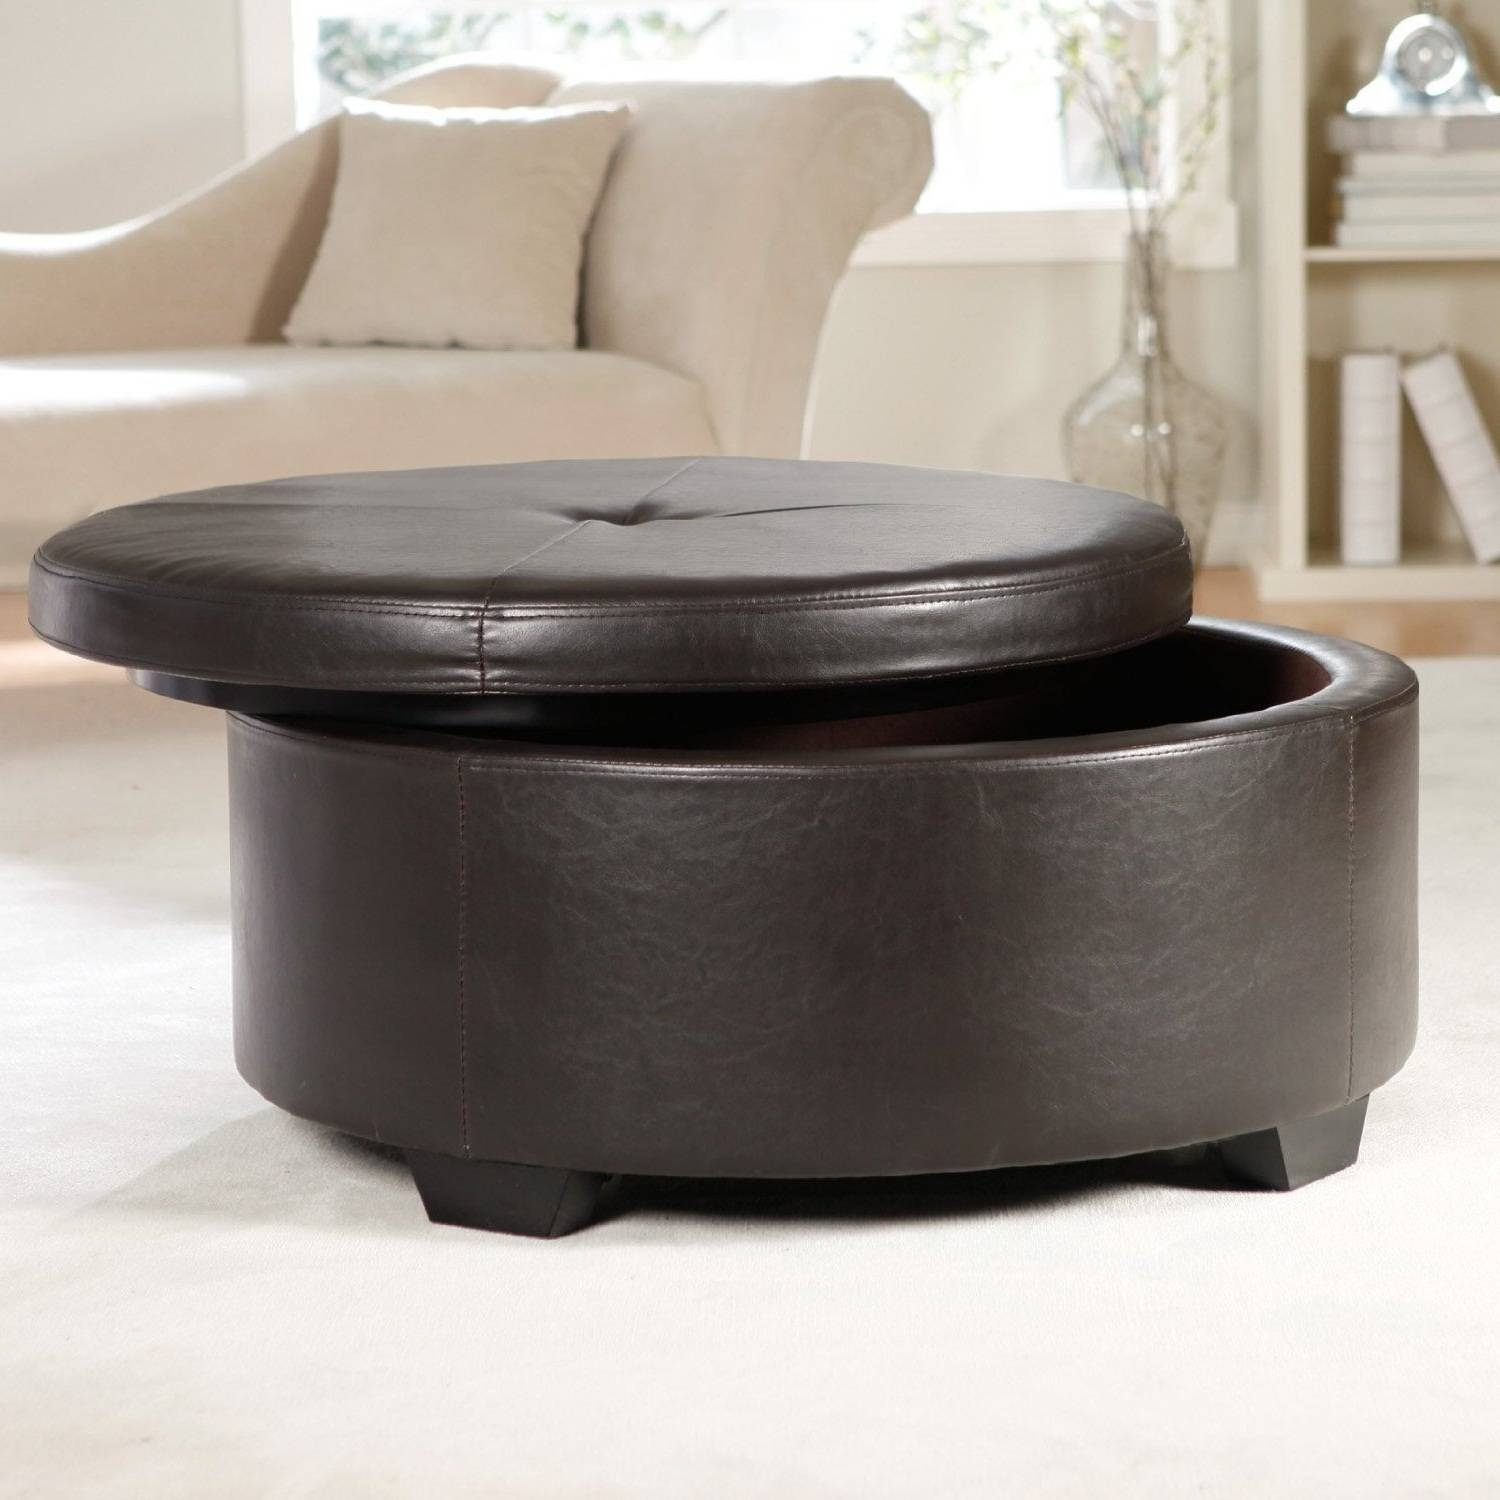 Coffee Table: Outstanding Round Storage Coffee Table Designs Small in Round Storage Coffee Tables (Image 6 of 30)